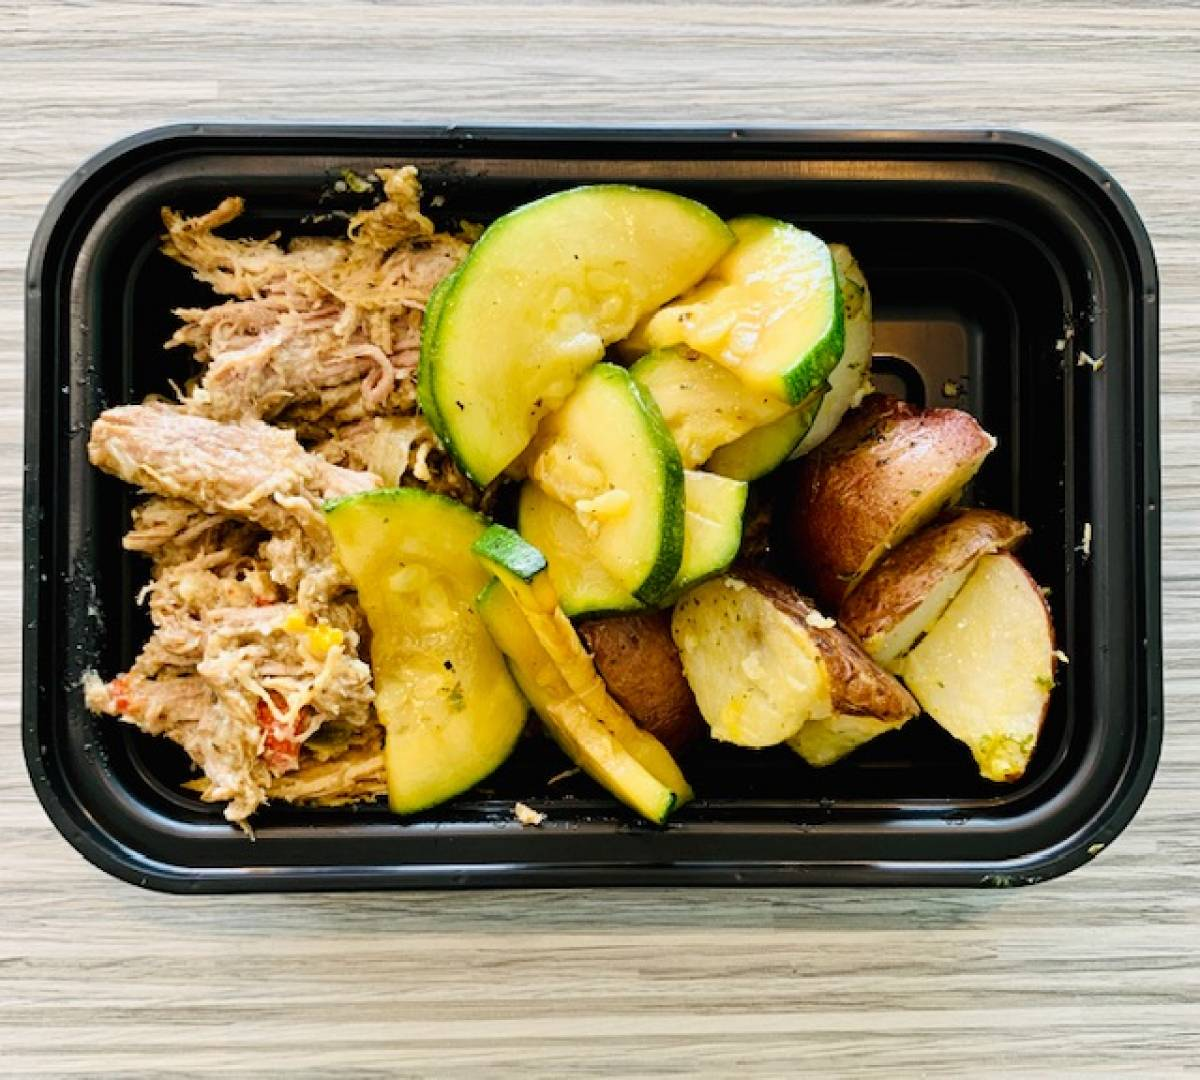 Pulled Pork, Red Potato and Zucchini